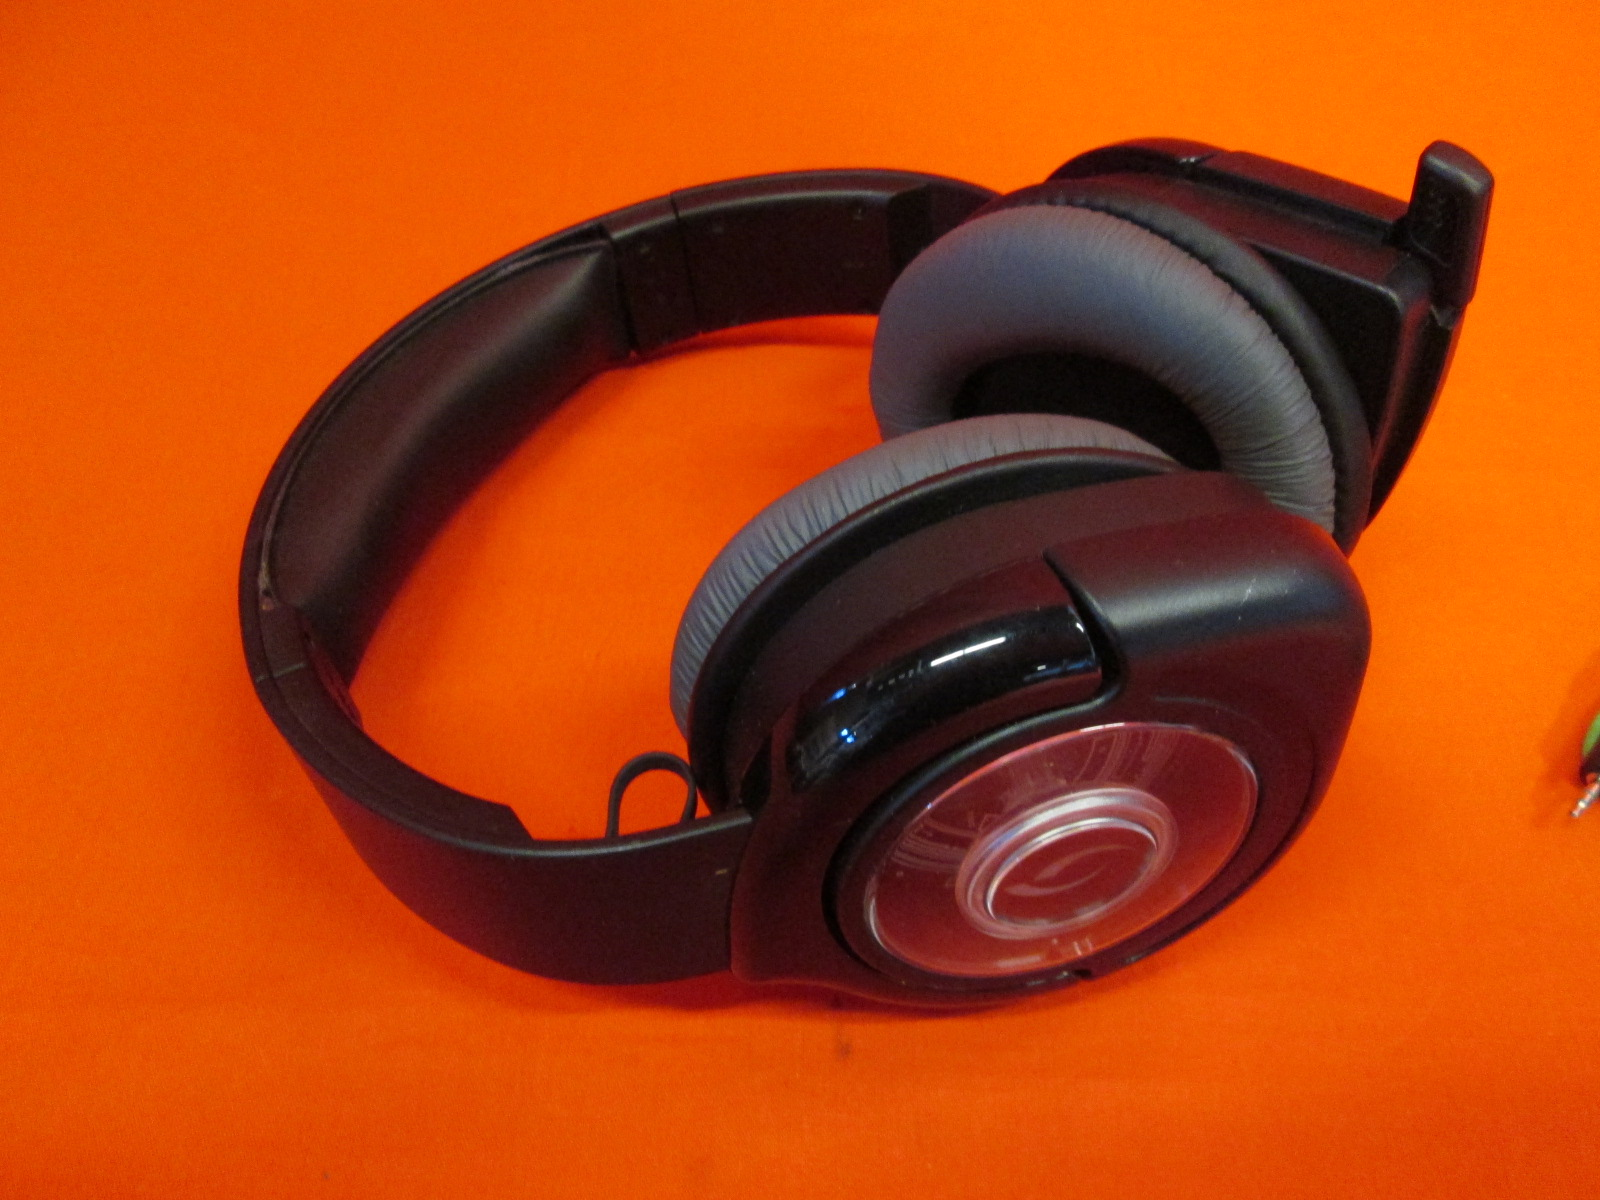 afterglow prismatic wireless headset manual